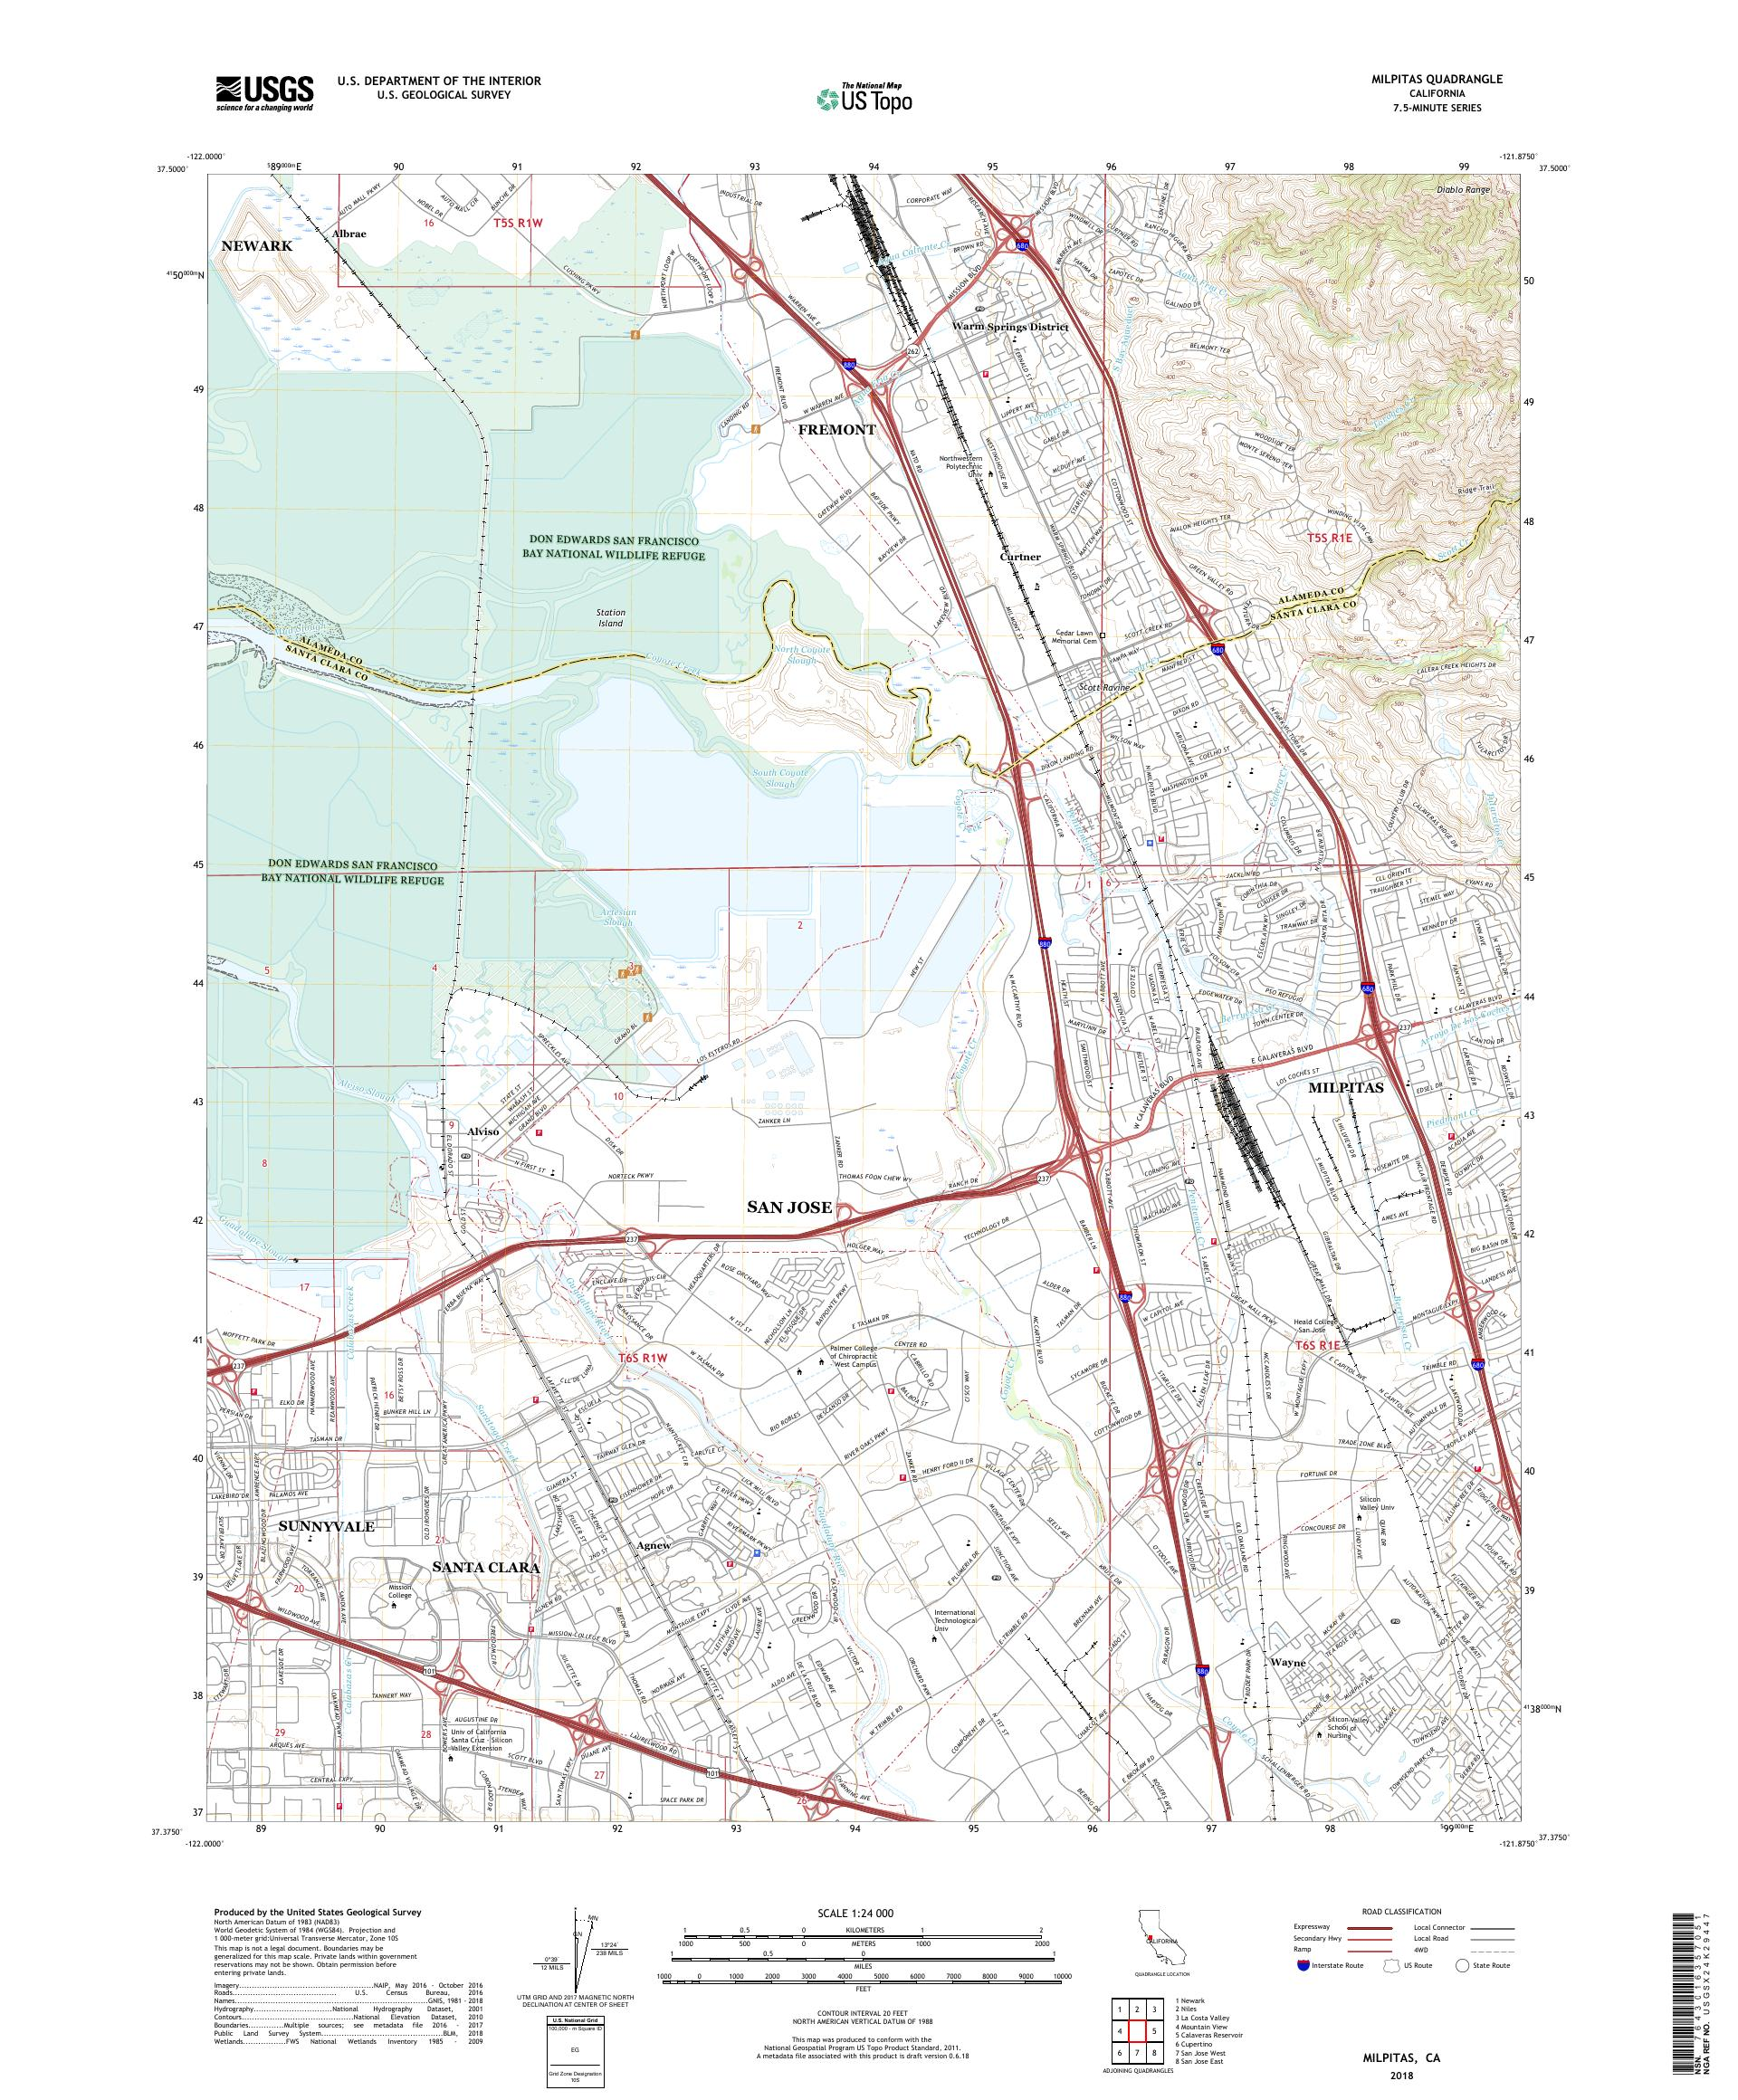 MyTopo Milpitas, California USGS Quad Topo Map